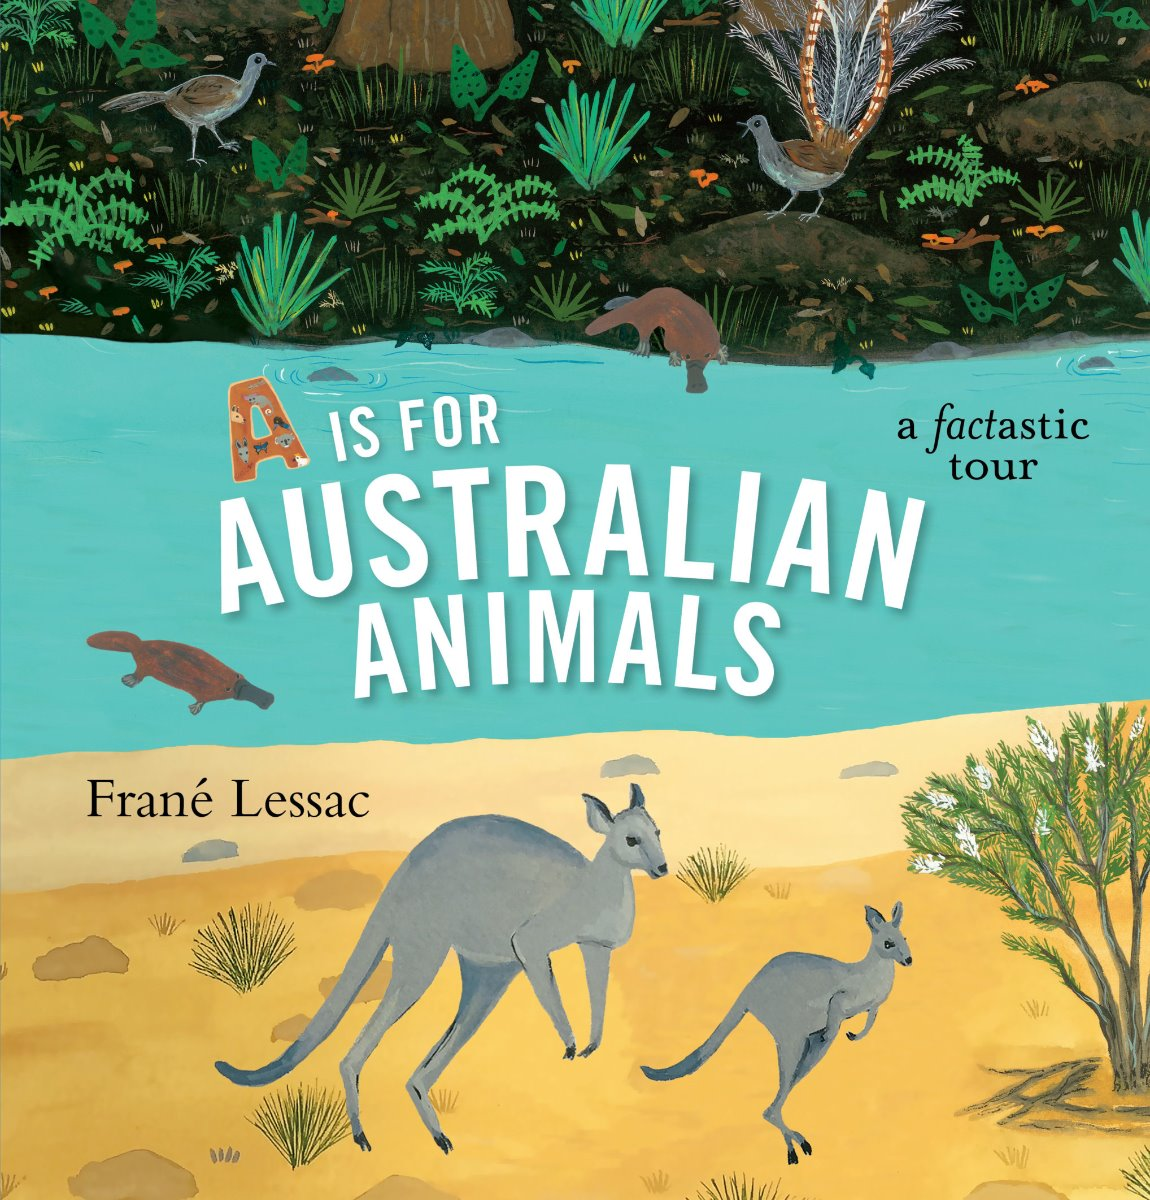 A is For Australian Animals - Frane Lessac HB